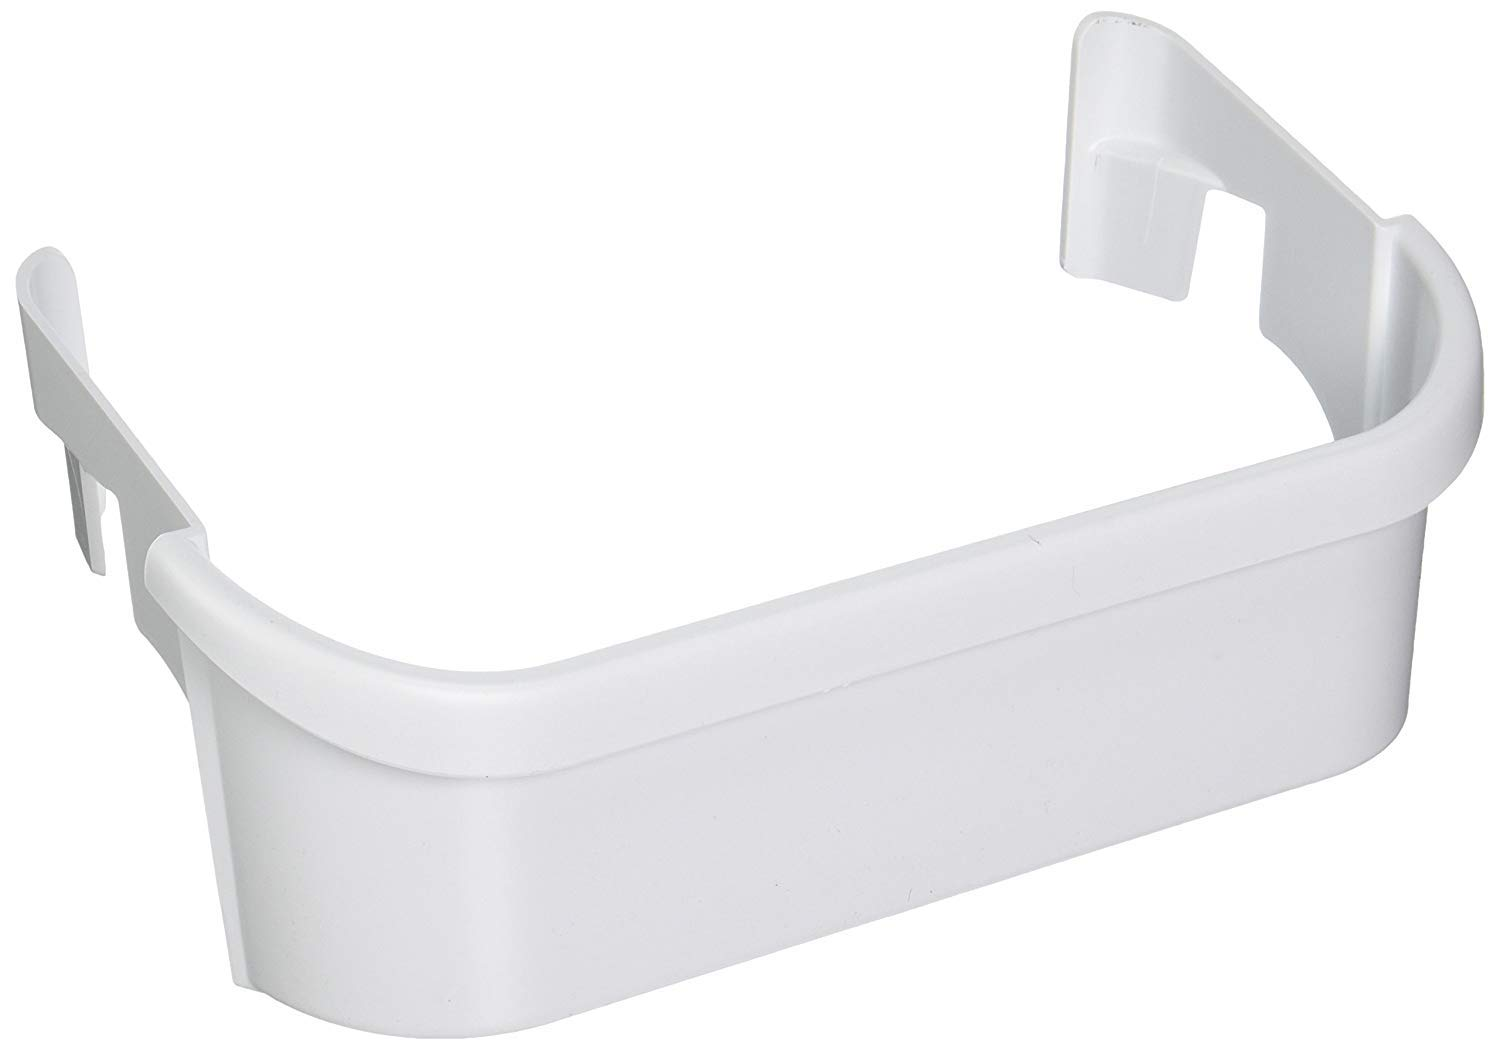 240351600 - Frigidaire Aftermarket Refrigerator Door Bin Shelf